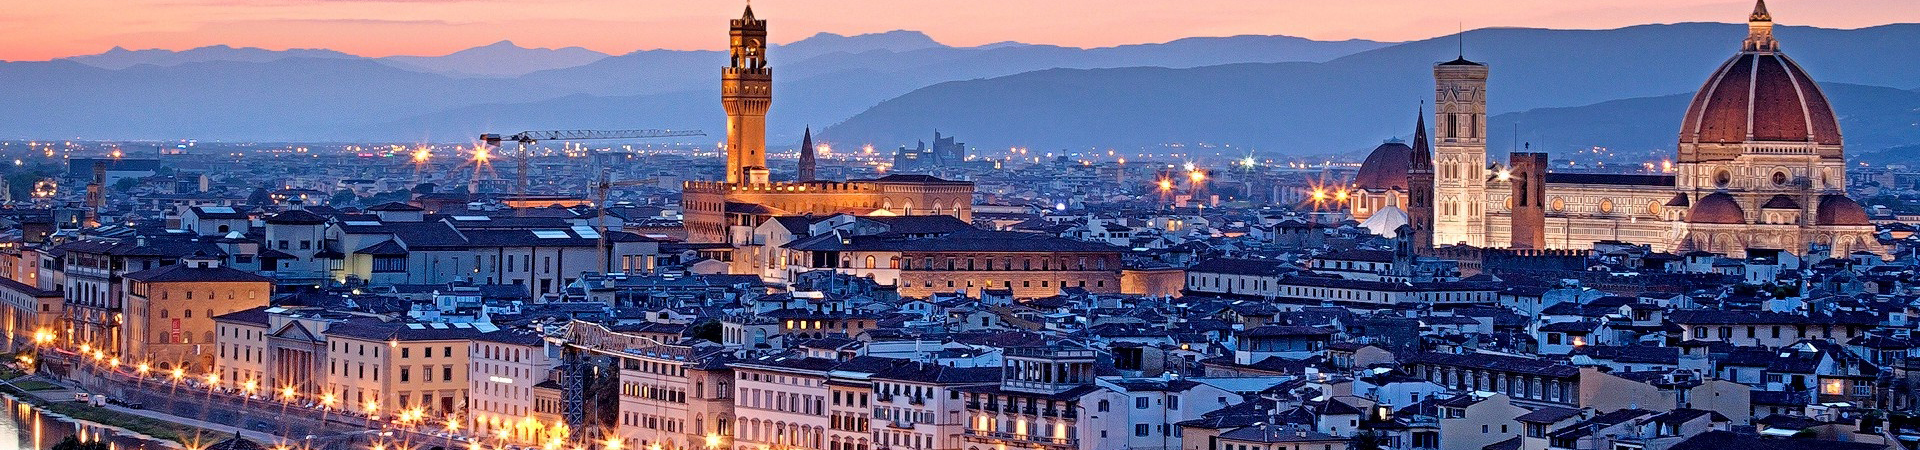 florence_1427804950